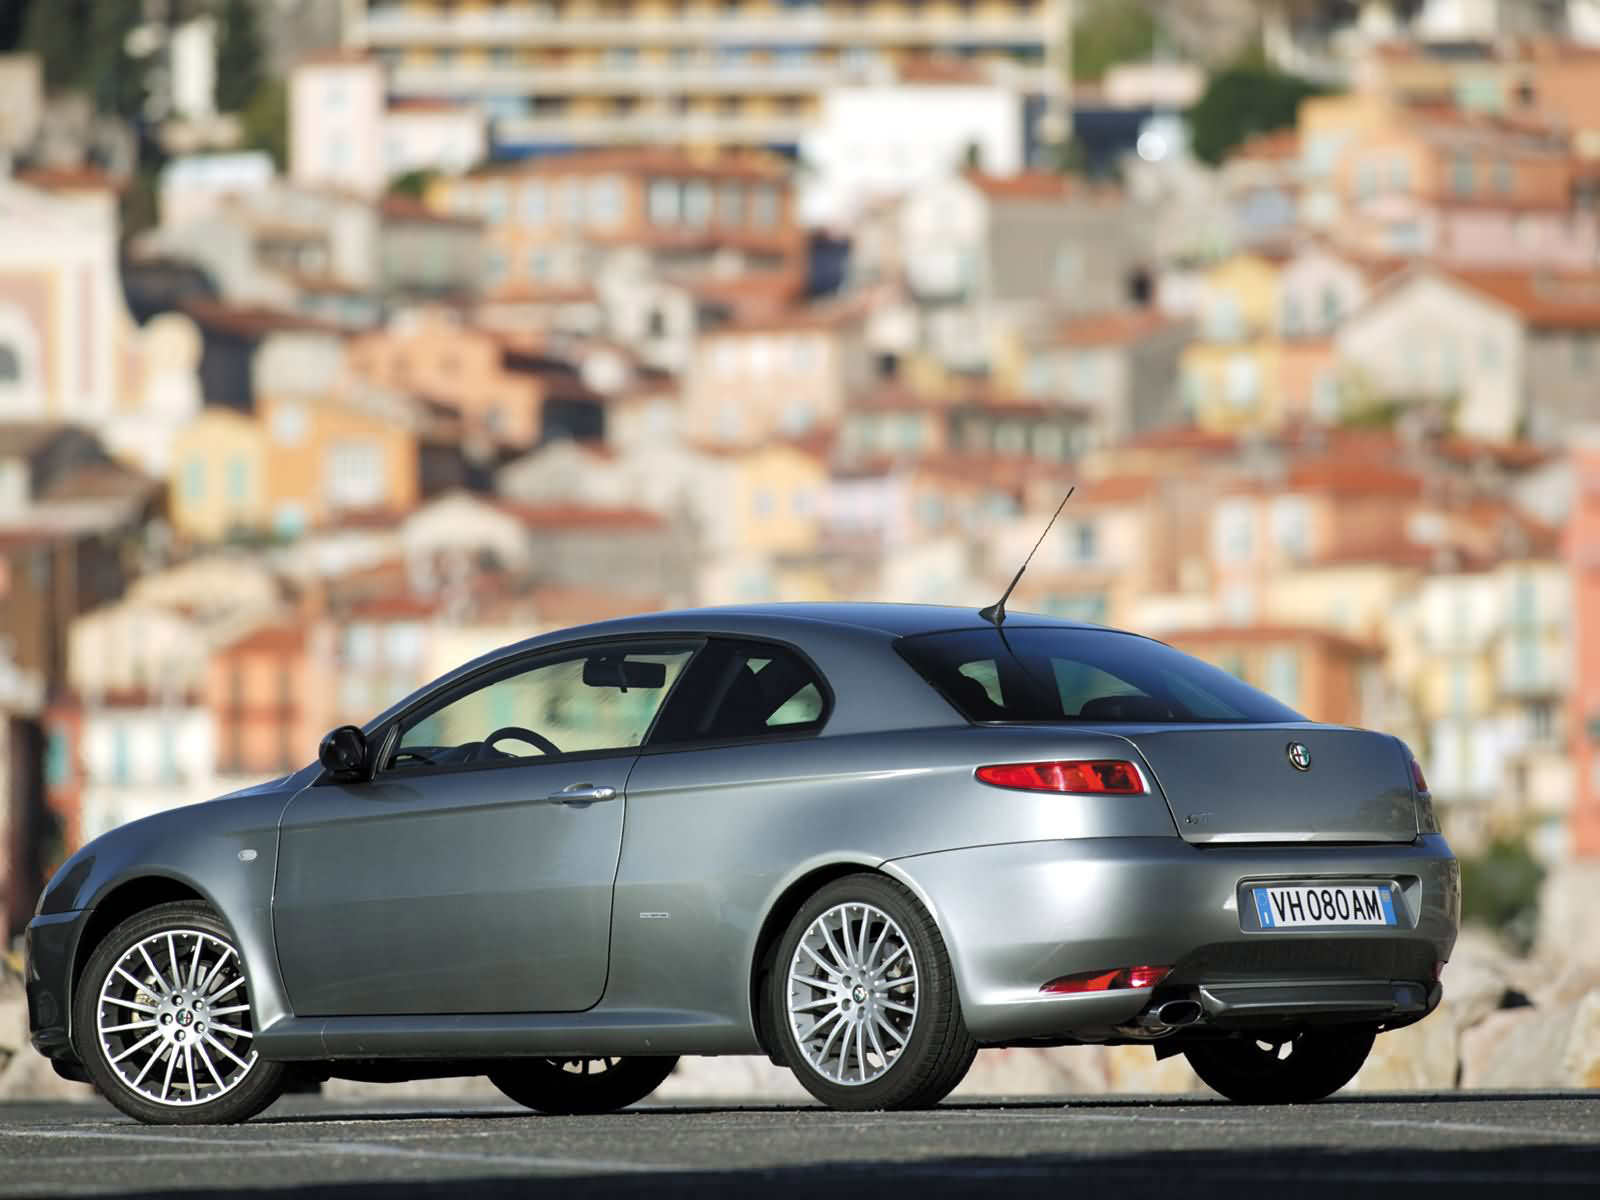 Alfa romeo coupe photo - 1